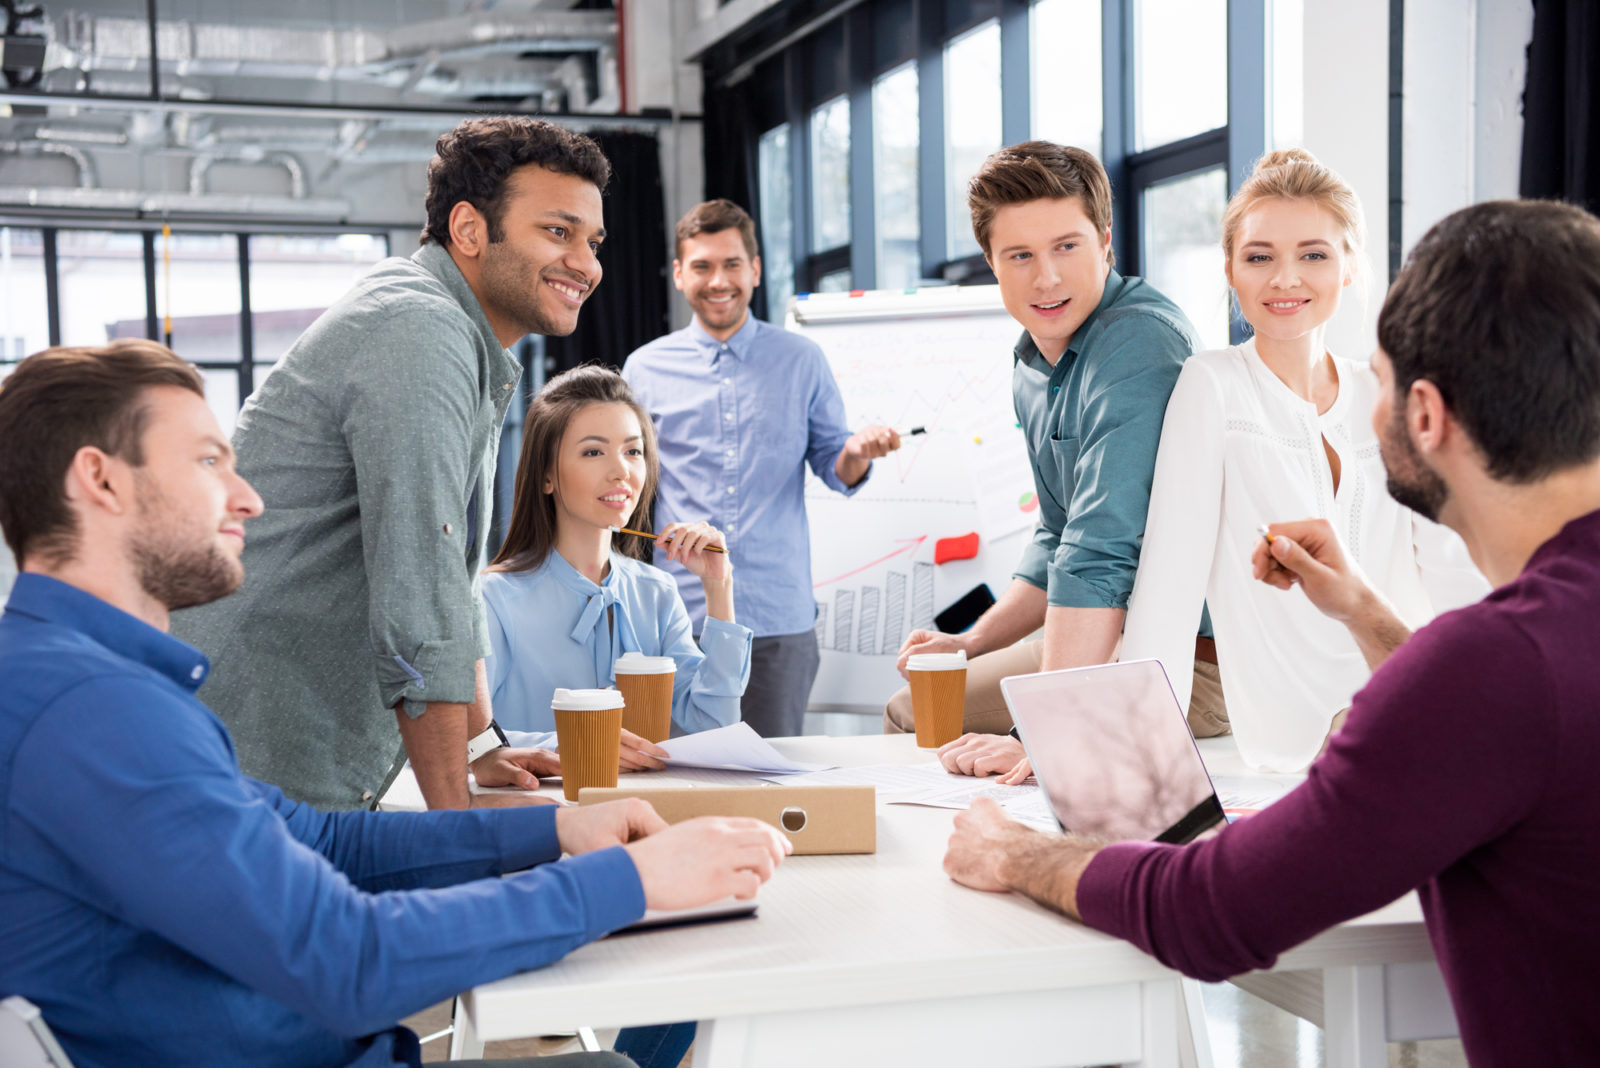 5 'Team Building' Activities Your Staff Will Actually Like